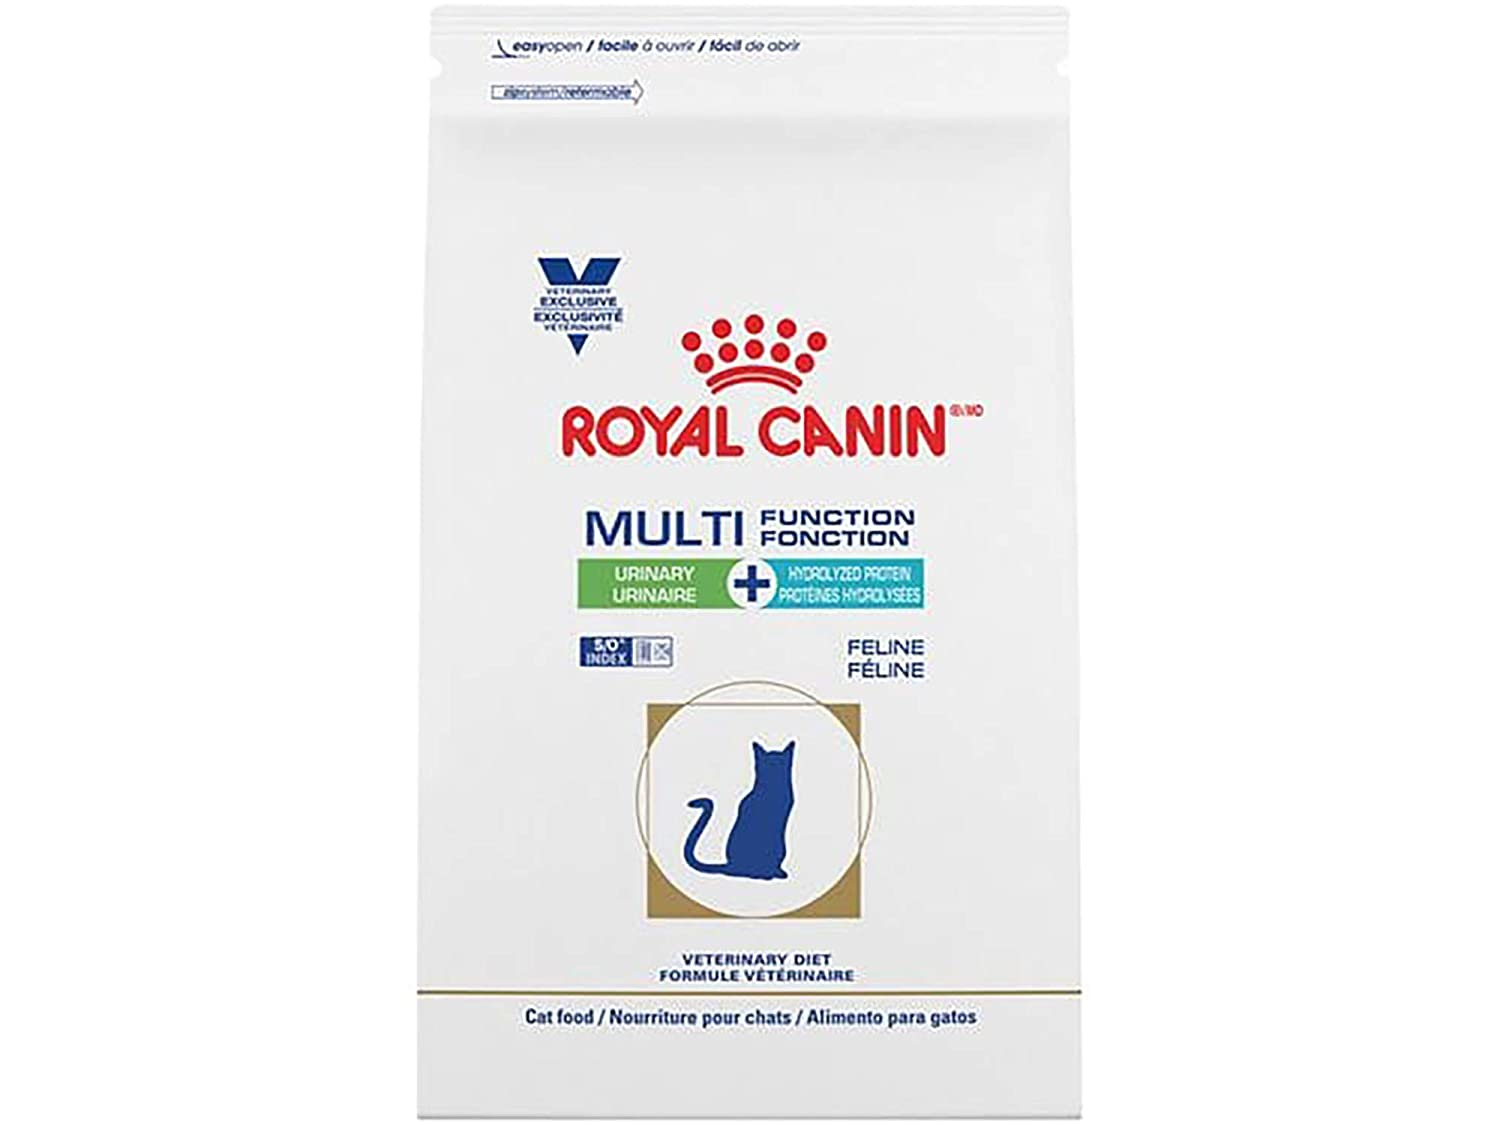 Amazon.com : Royal Canin Veterinary Diet Feline Multifunction Urinary + Hydrolyzed Protein Dry Cat Food 6.6 lb : Pet Supplies